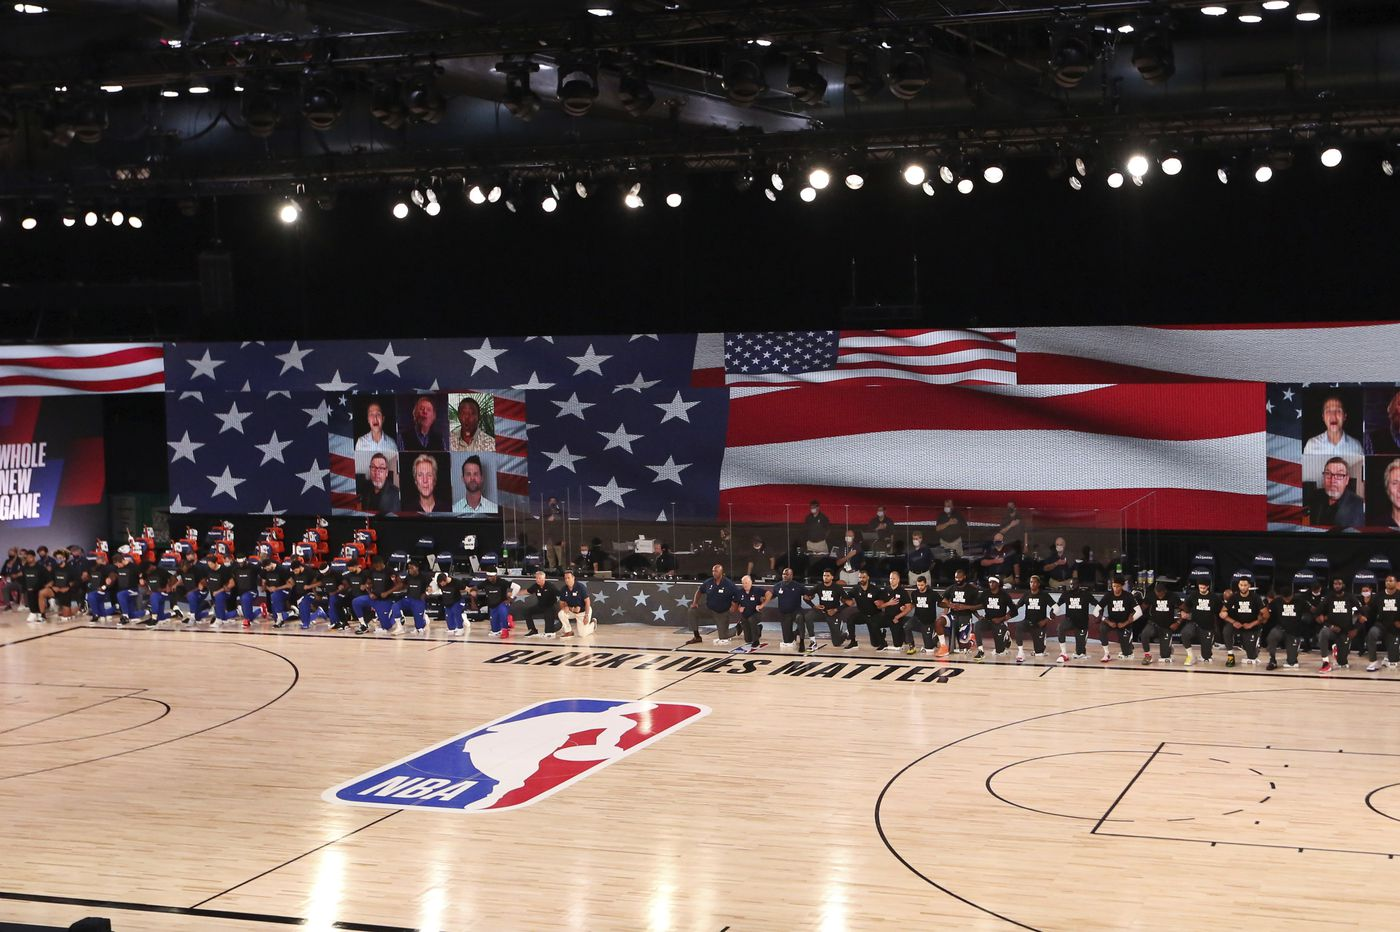 Sixers, Pacers kneel during national anthem as teams across NBA have